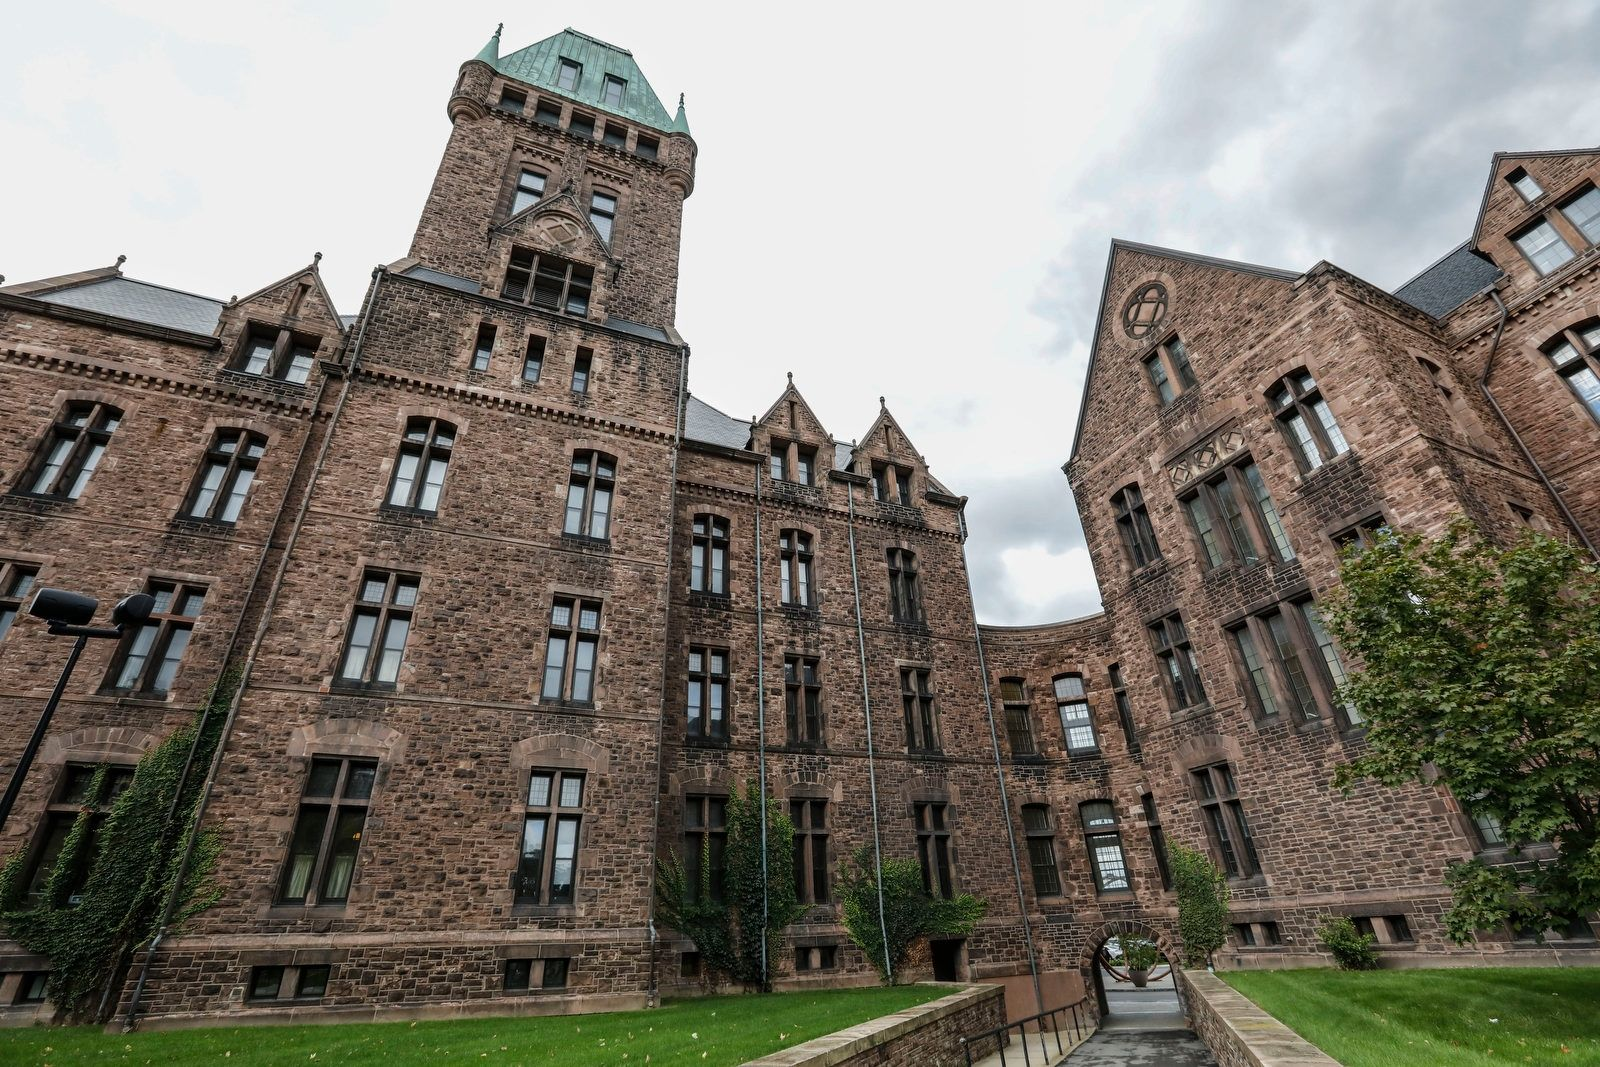 Hotel Henry at the Richardson Olmsted Campus. The onetime Buffalo State Asylum for the Insane was designed by H.H. Richardson, considered one of the country's greatest architects. The hotel wants to expand into two additional buildings, increasing the number of rooms from 88 to 124.